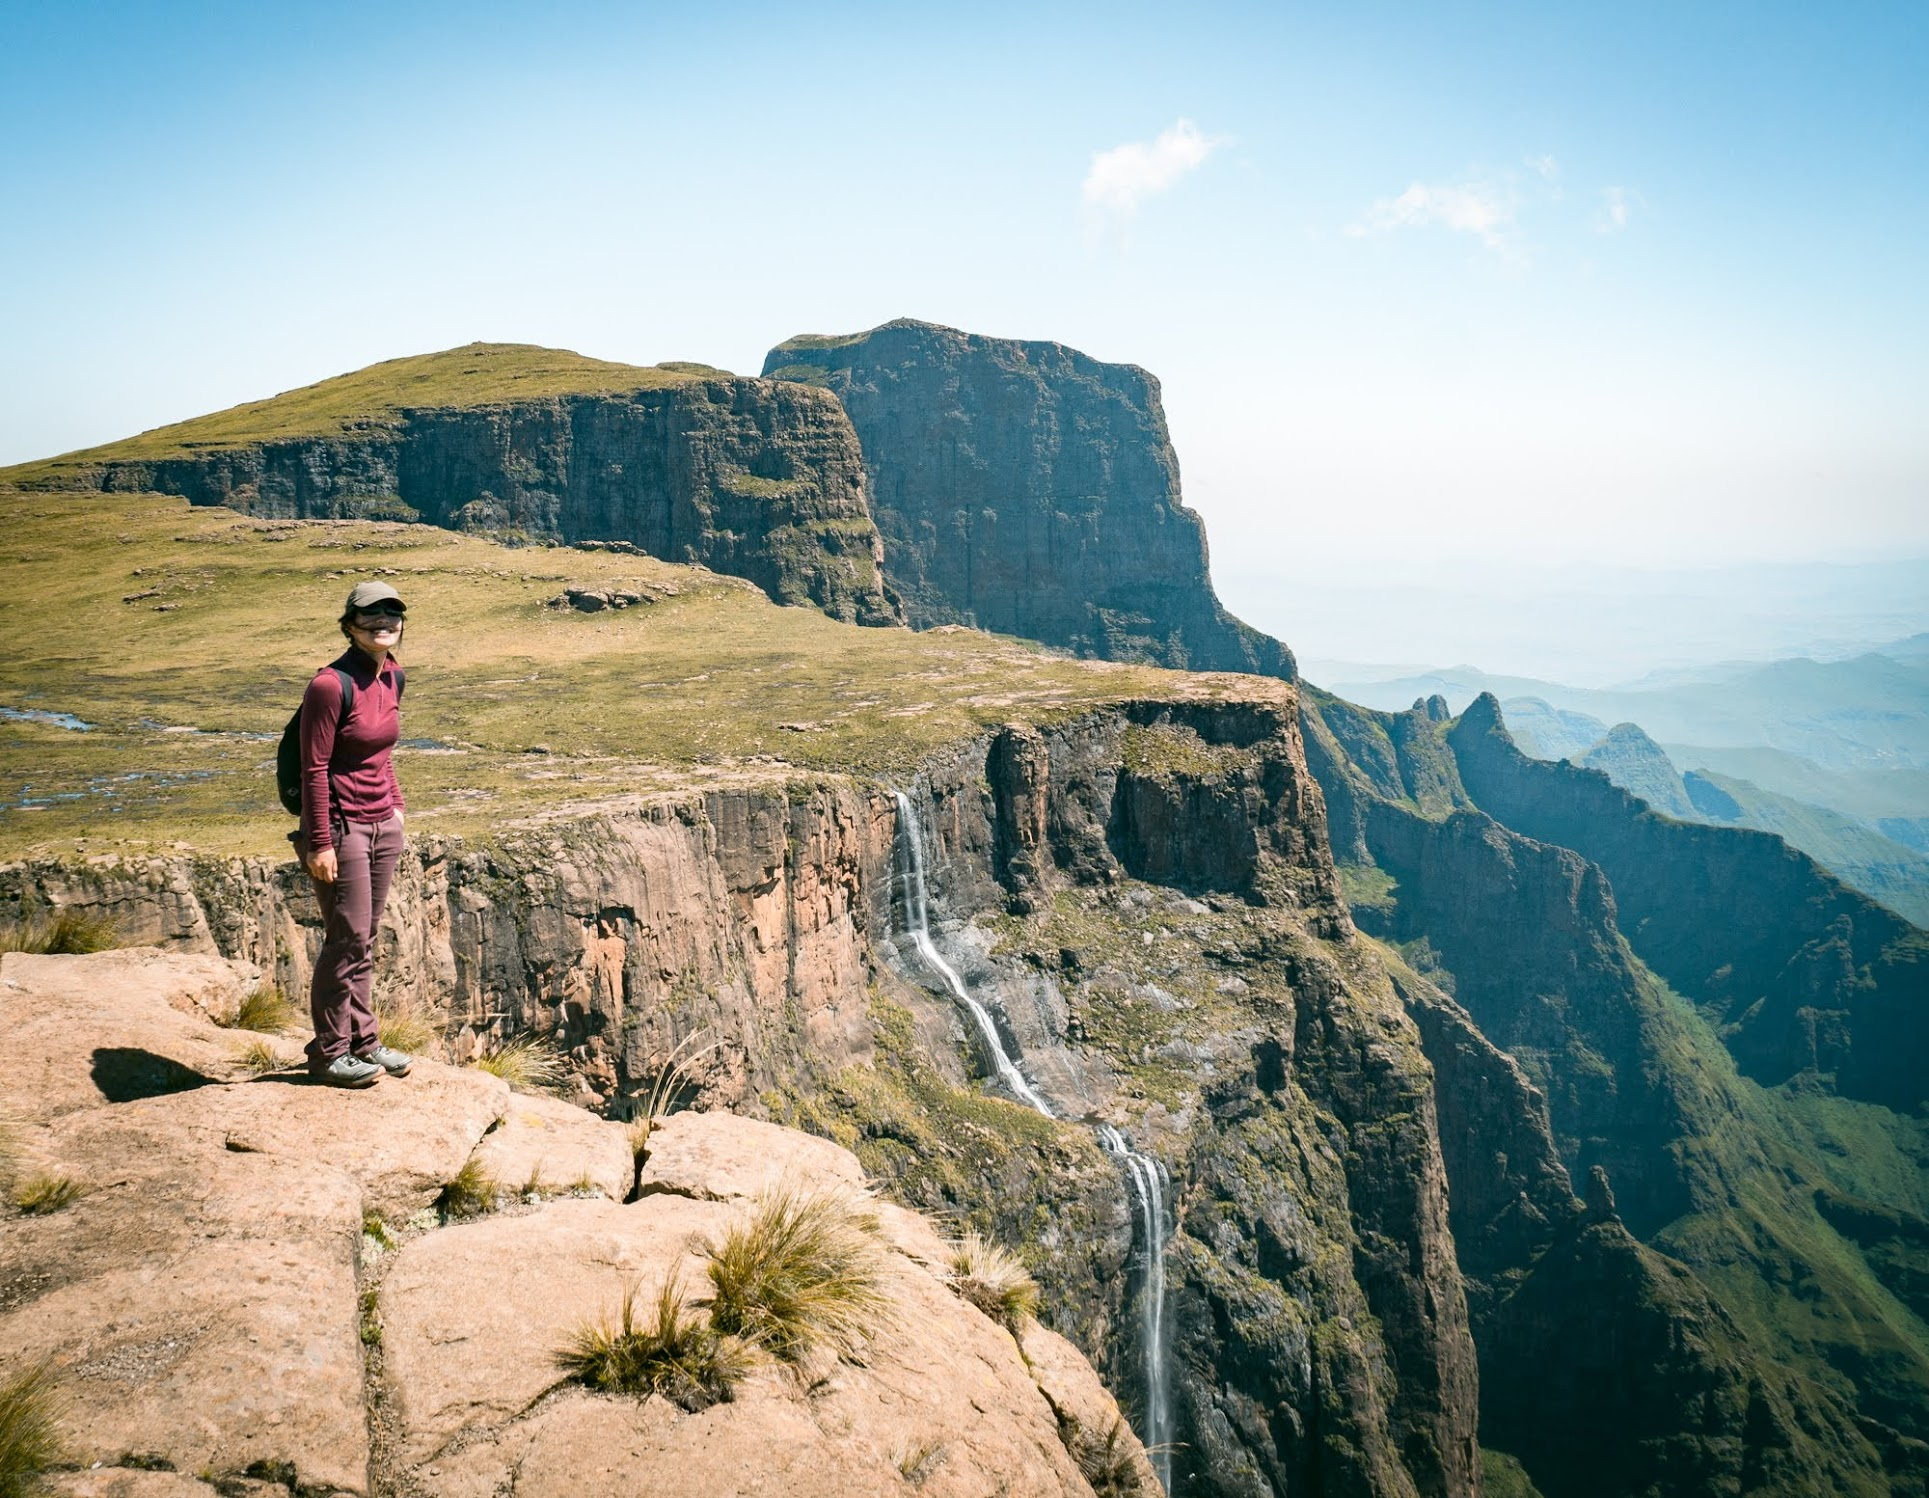 One of the highlights of the Amphitheatre hike is to get to the top of Tugela Falls, the highest waterfall in Africa (second highest in the world).